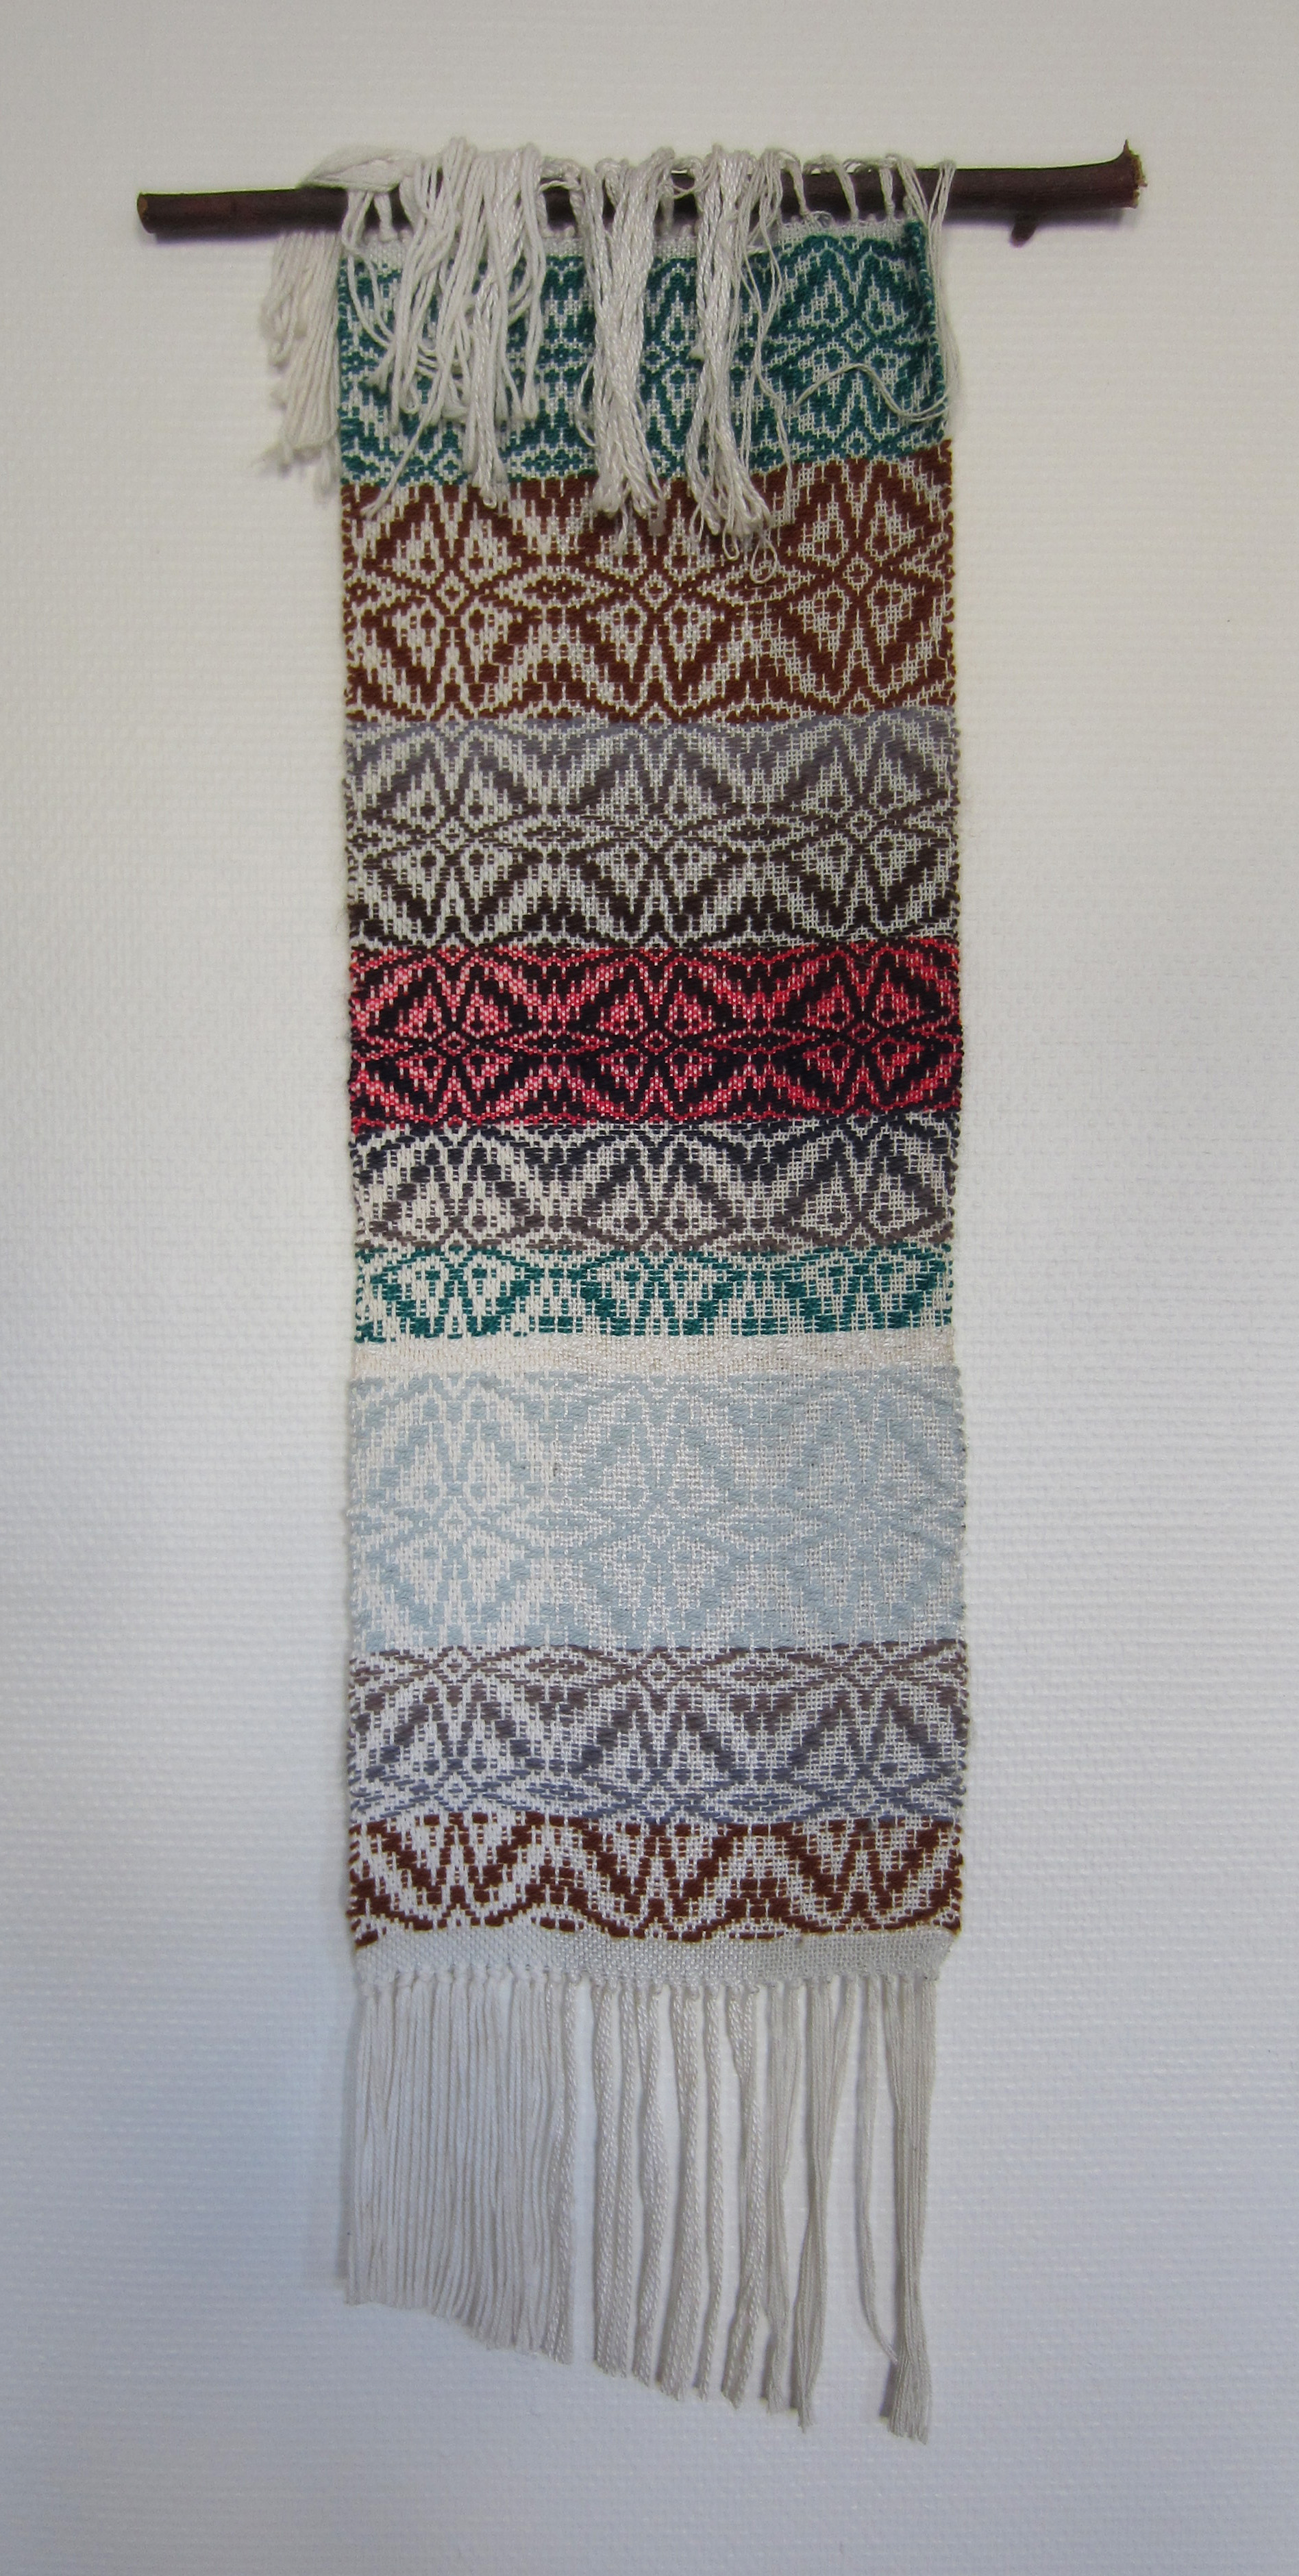 Natural Frequency, 2014, handwoven mixed fibers 36cm x 86cm